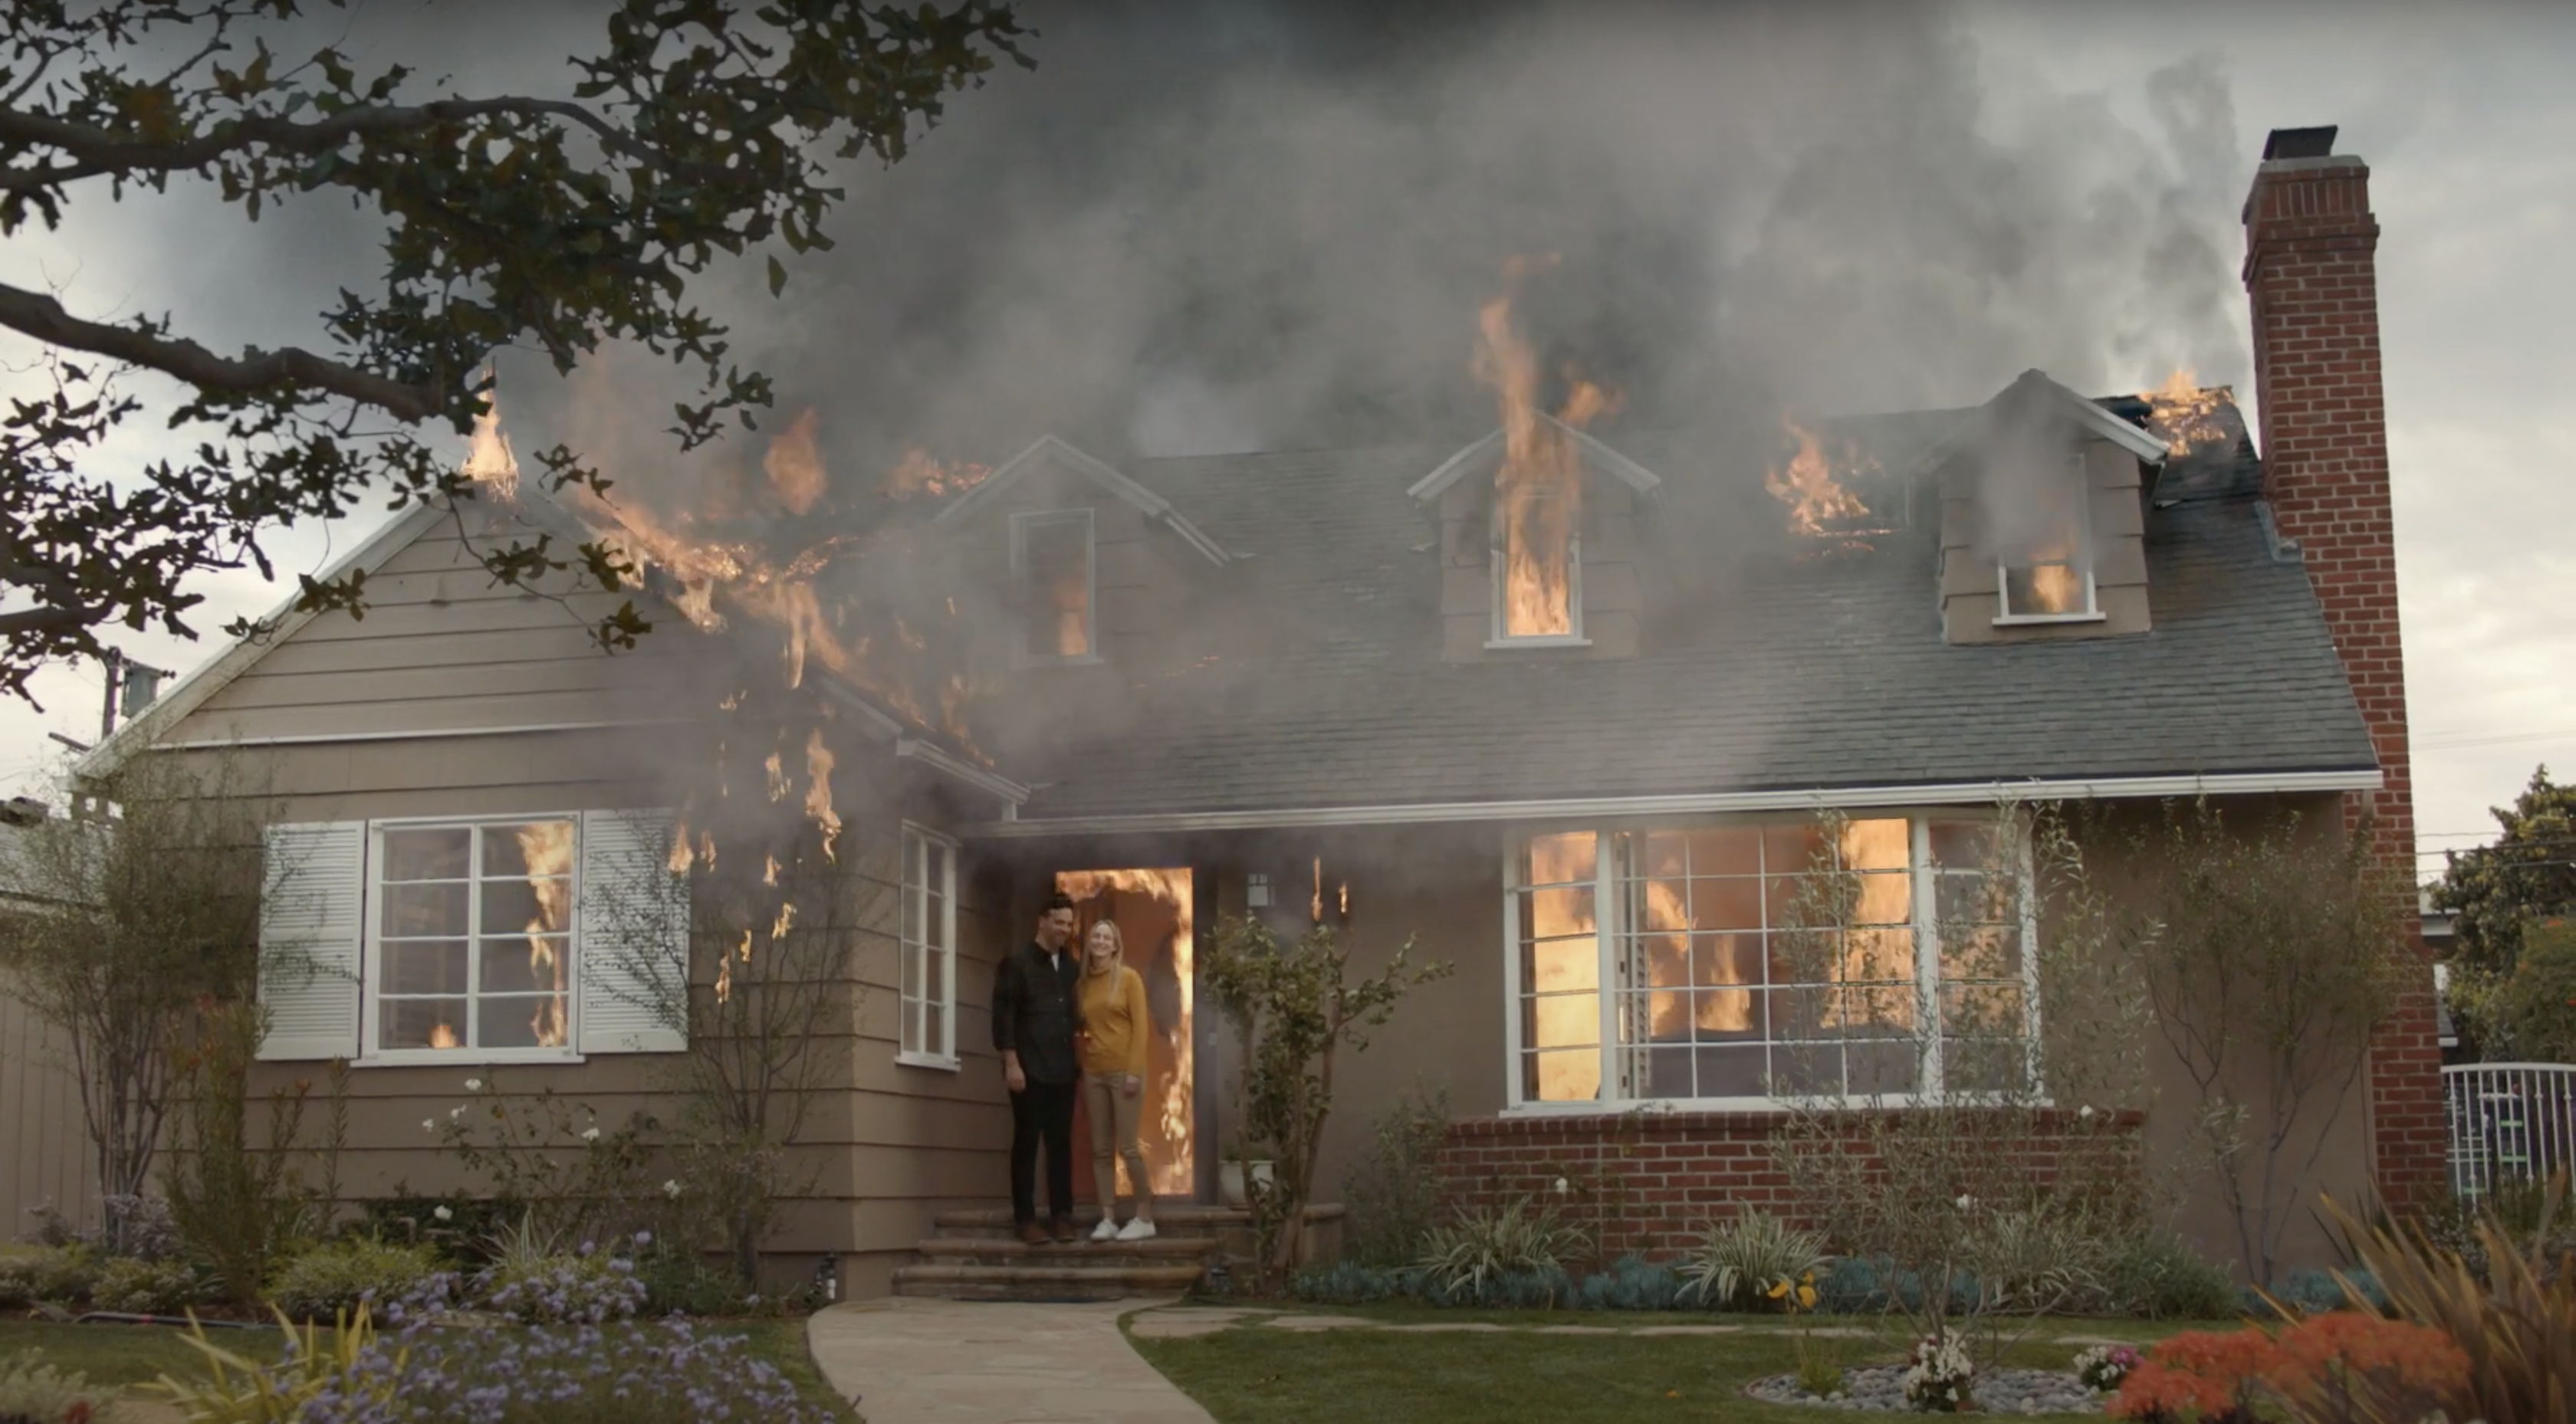 Our House Is On Fire In This Dramatic Climate Change Video